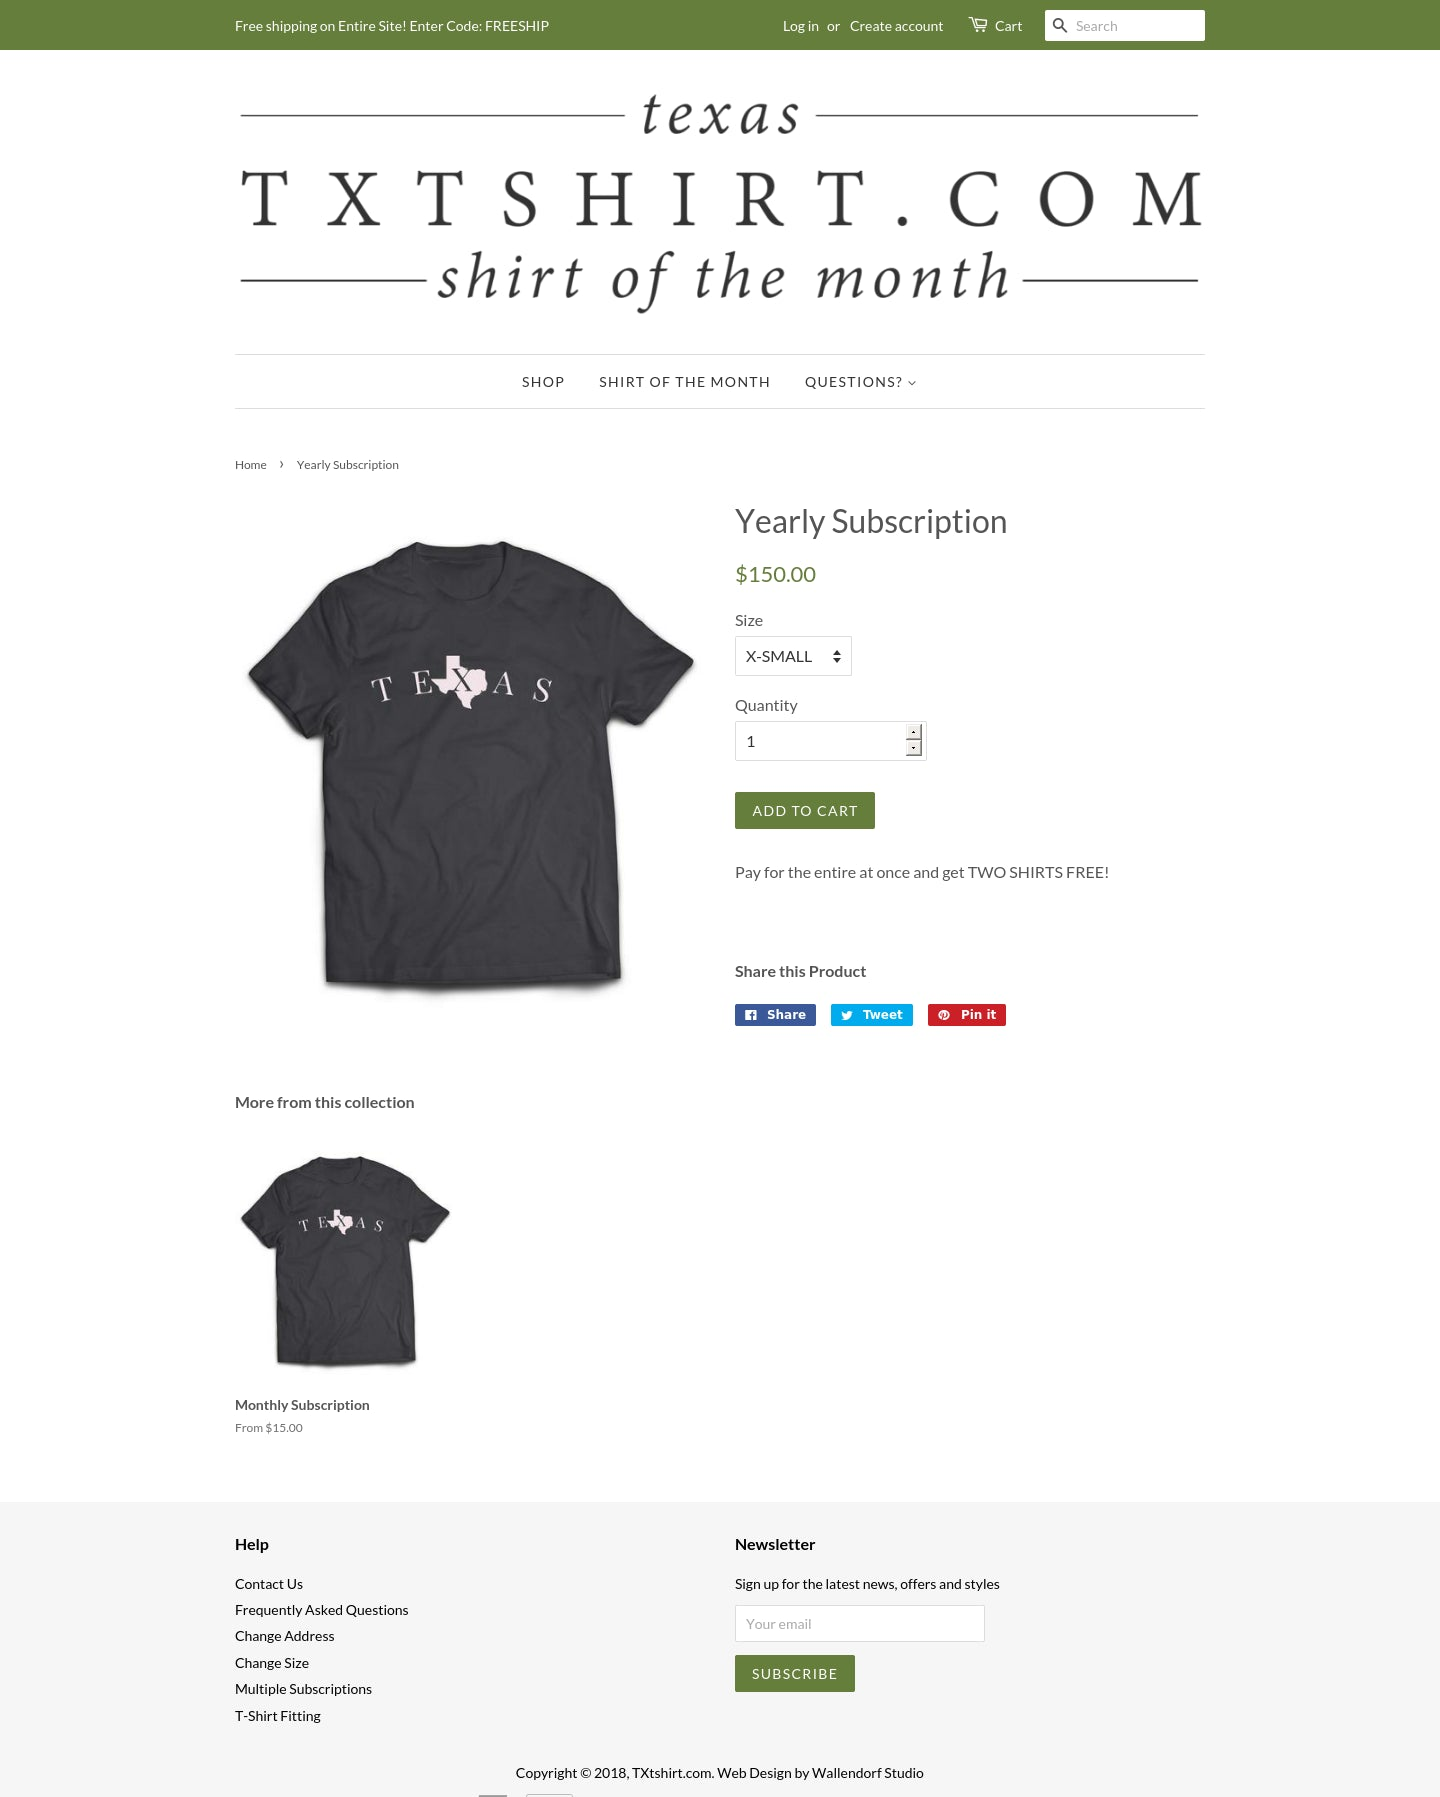 TXtshirt.com Screenshot - 2